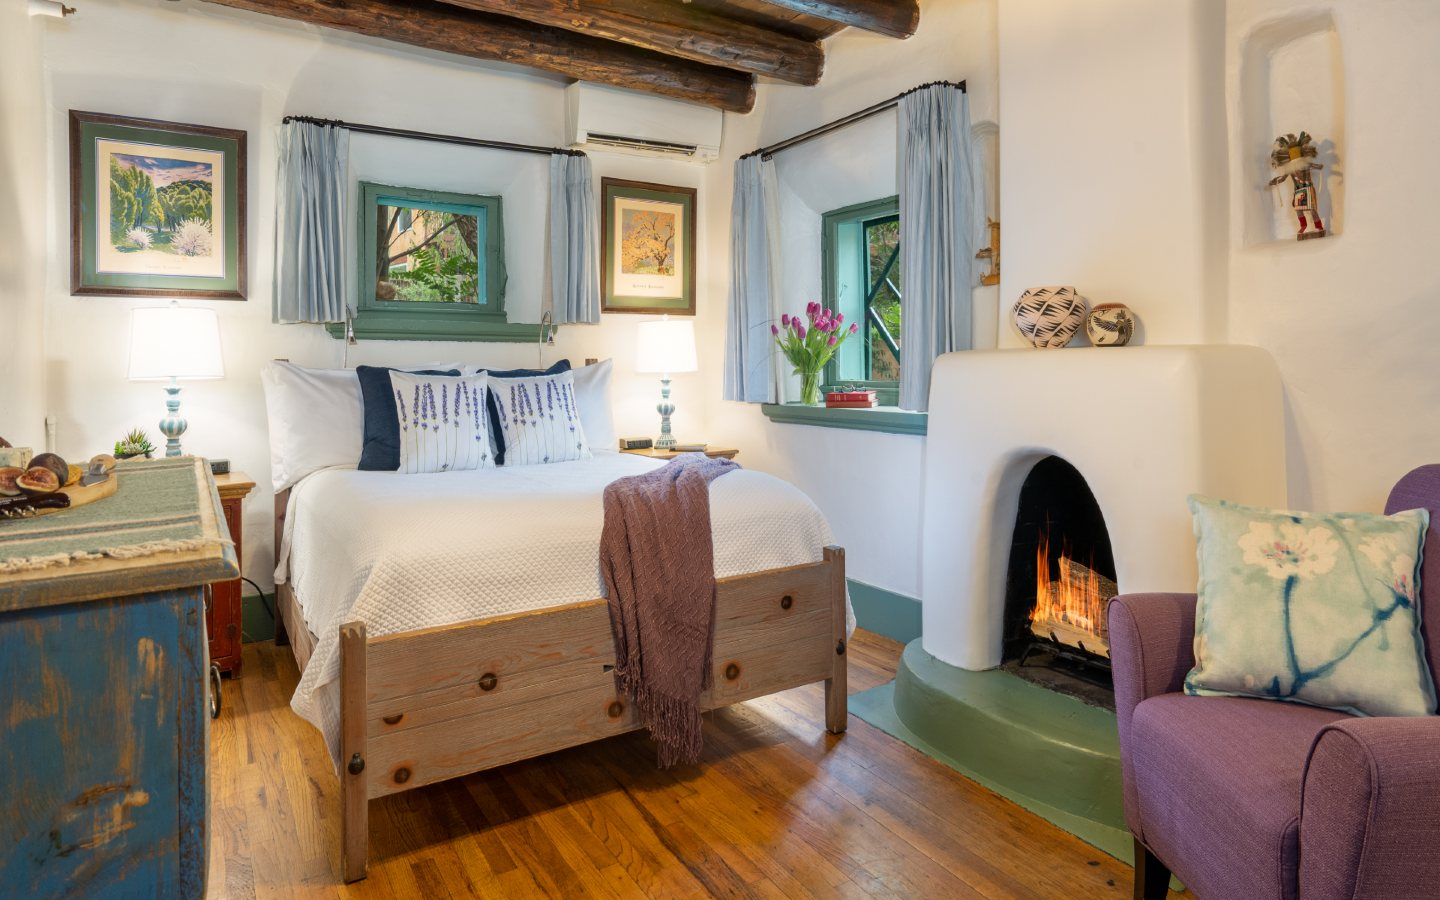 Bed and Breakfast in Santa Fe NM - O. Henry Room